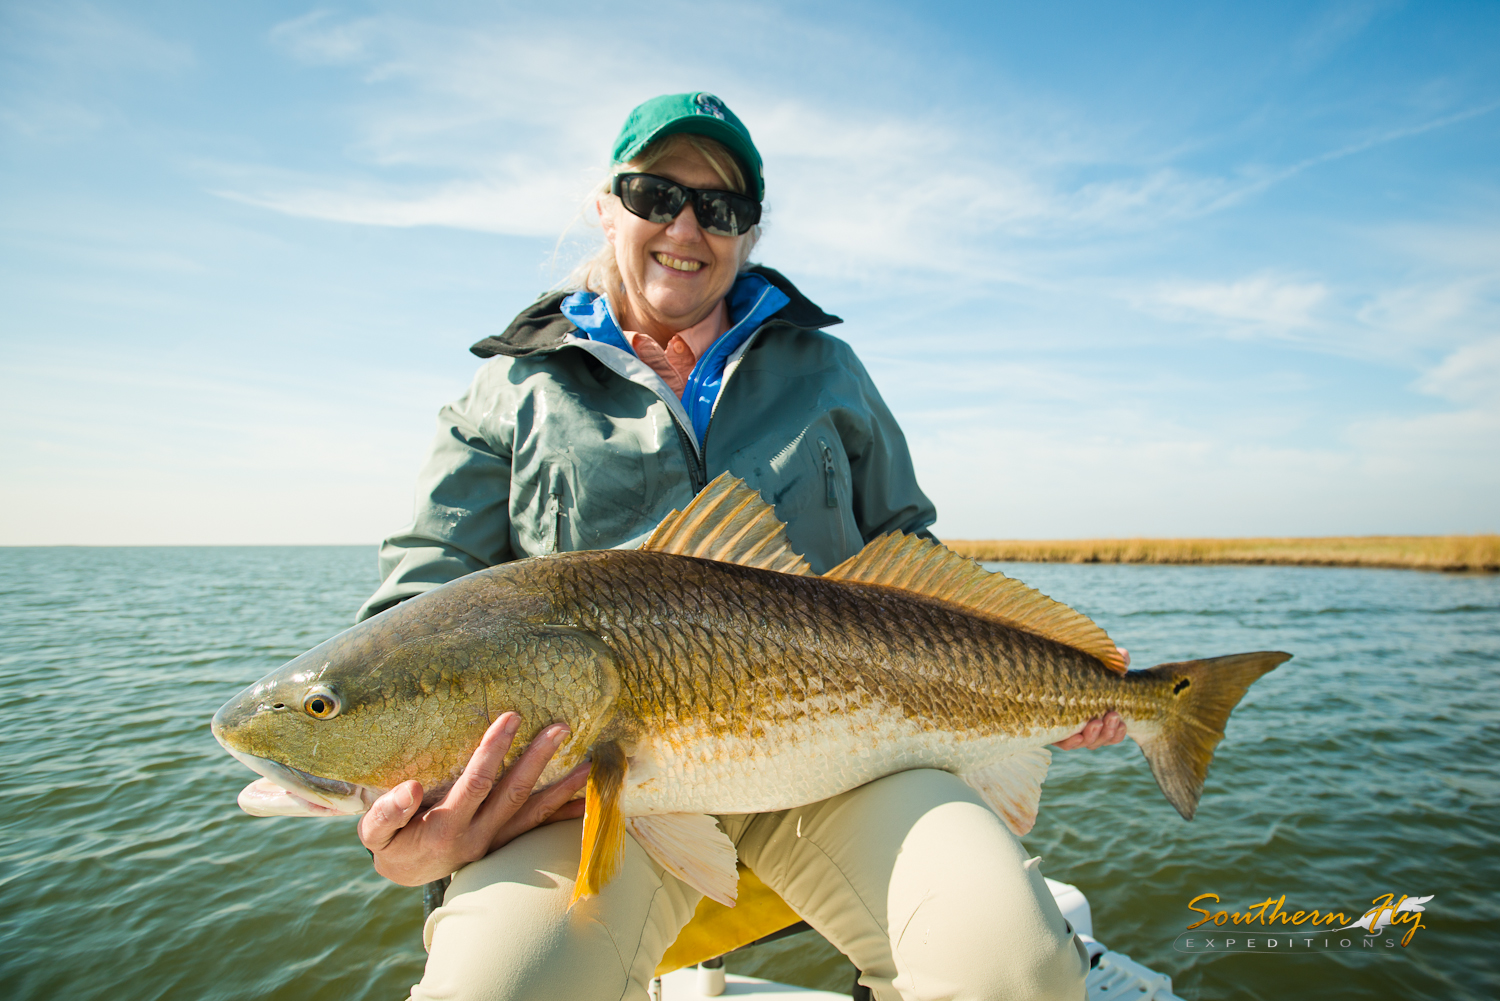 Women's Day Fishing Light Tackle Guide Southern Fly Expeditions